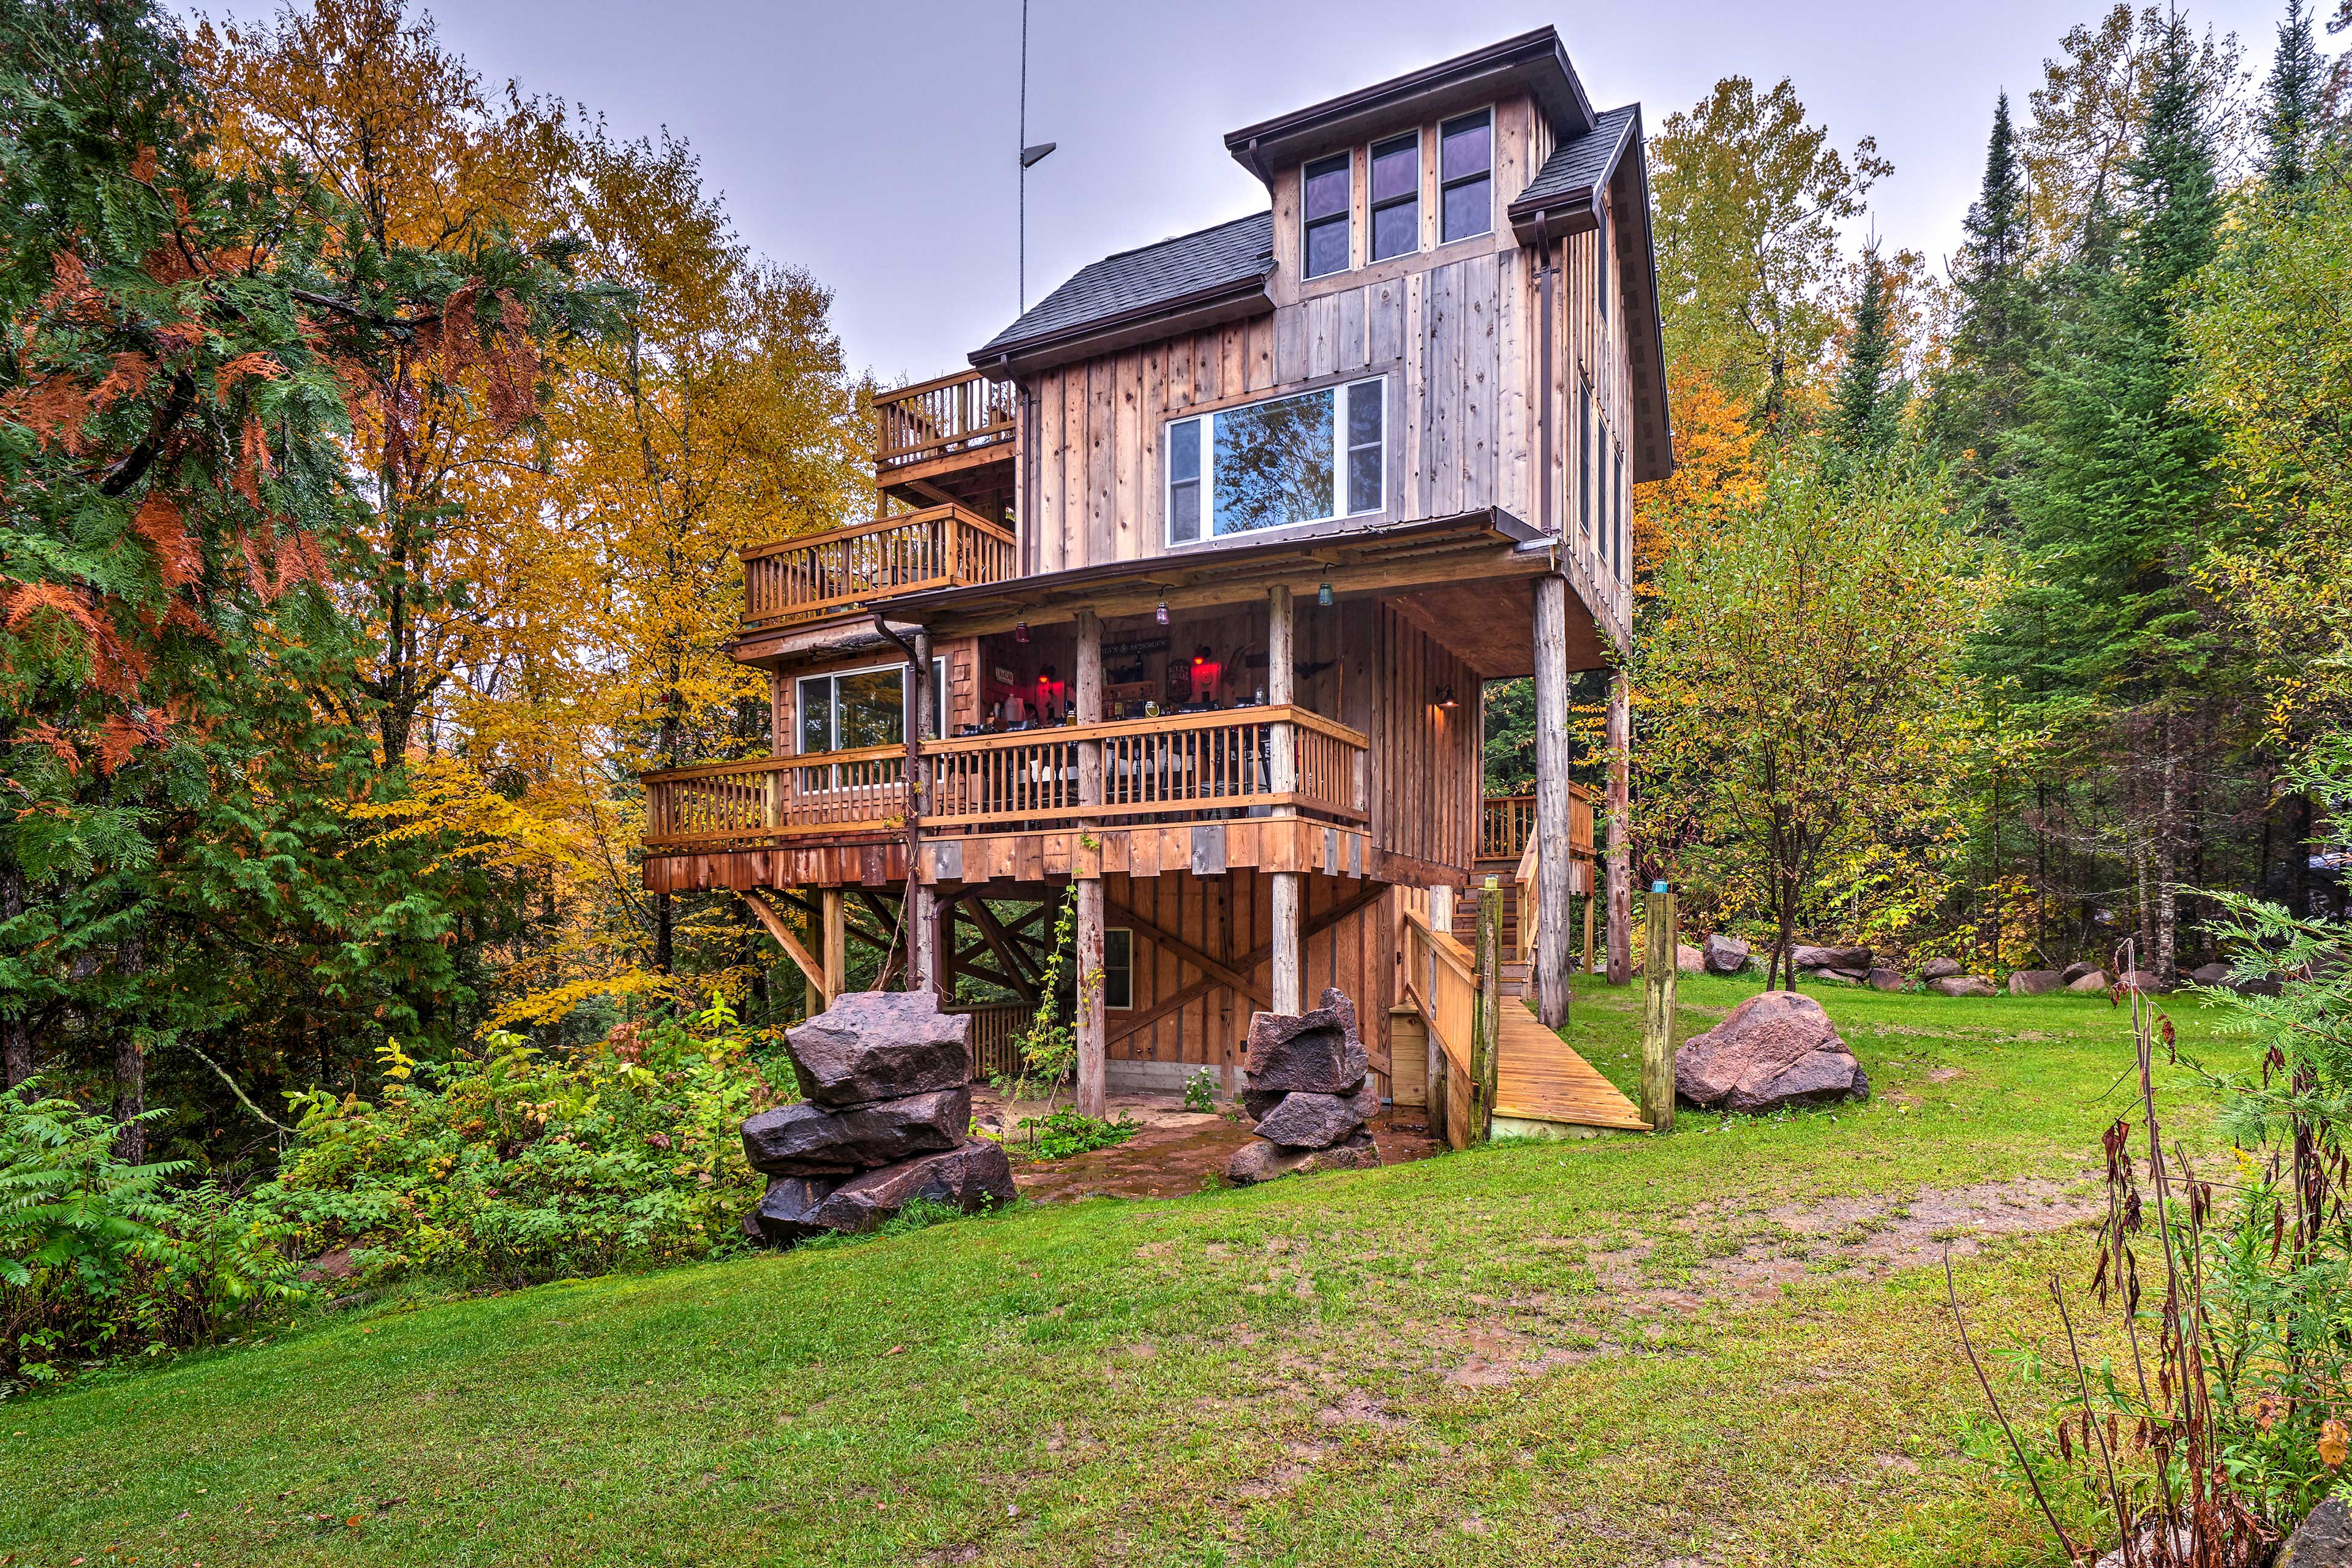 Escape to this eco-friendly Mountain vacation rental house!